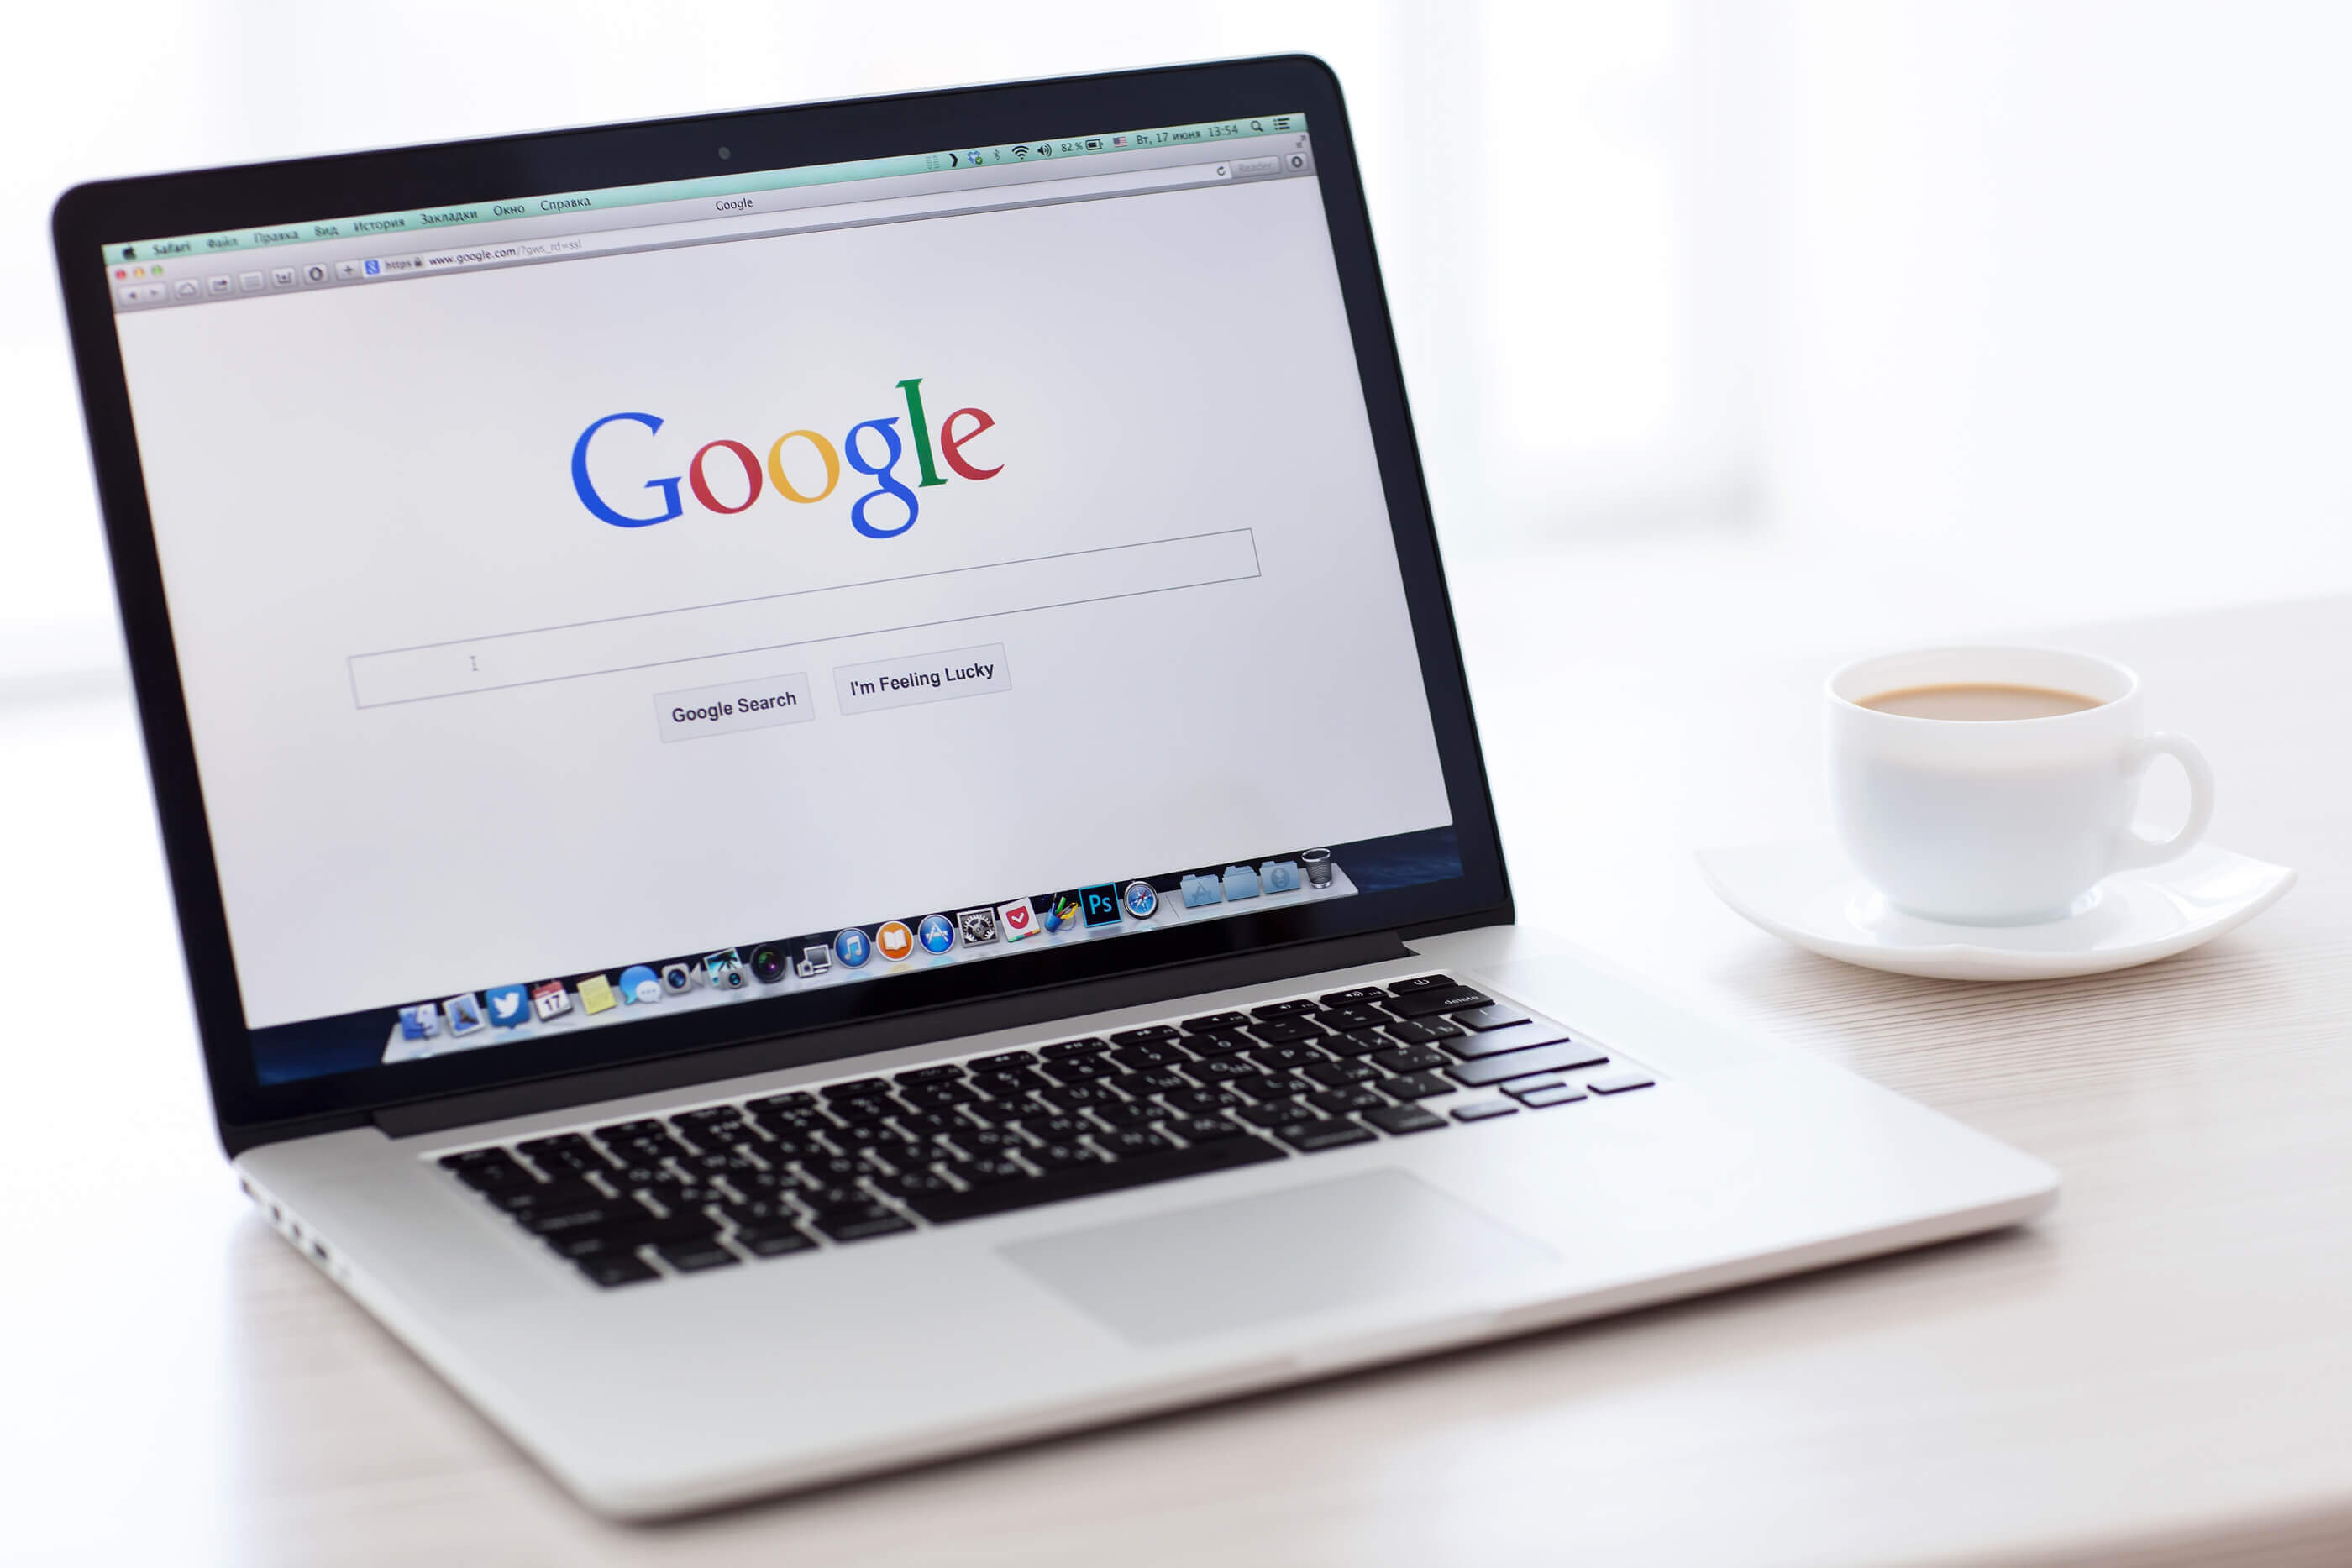 Image showing Macbook Pro Retina With Google Home Page On The Screen Stands On